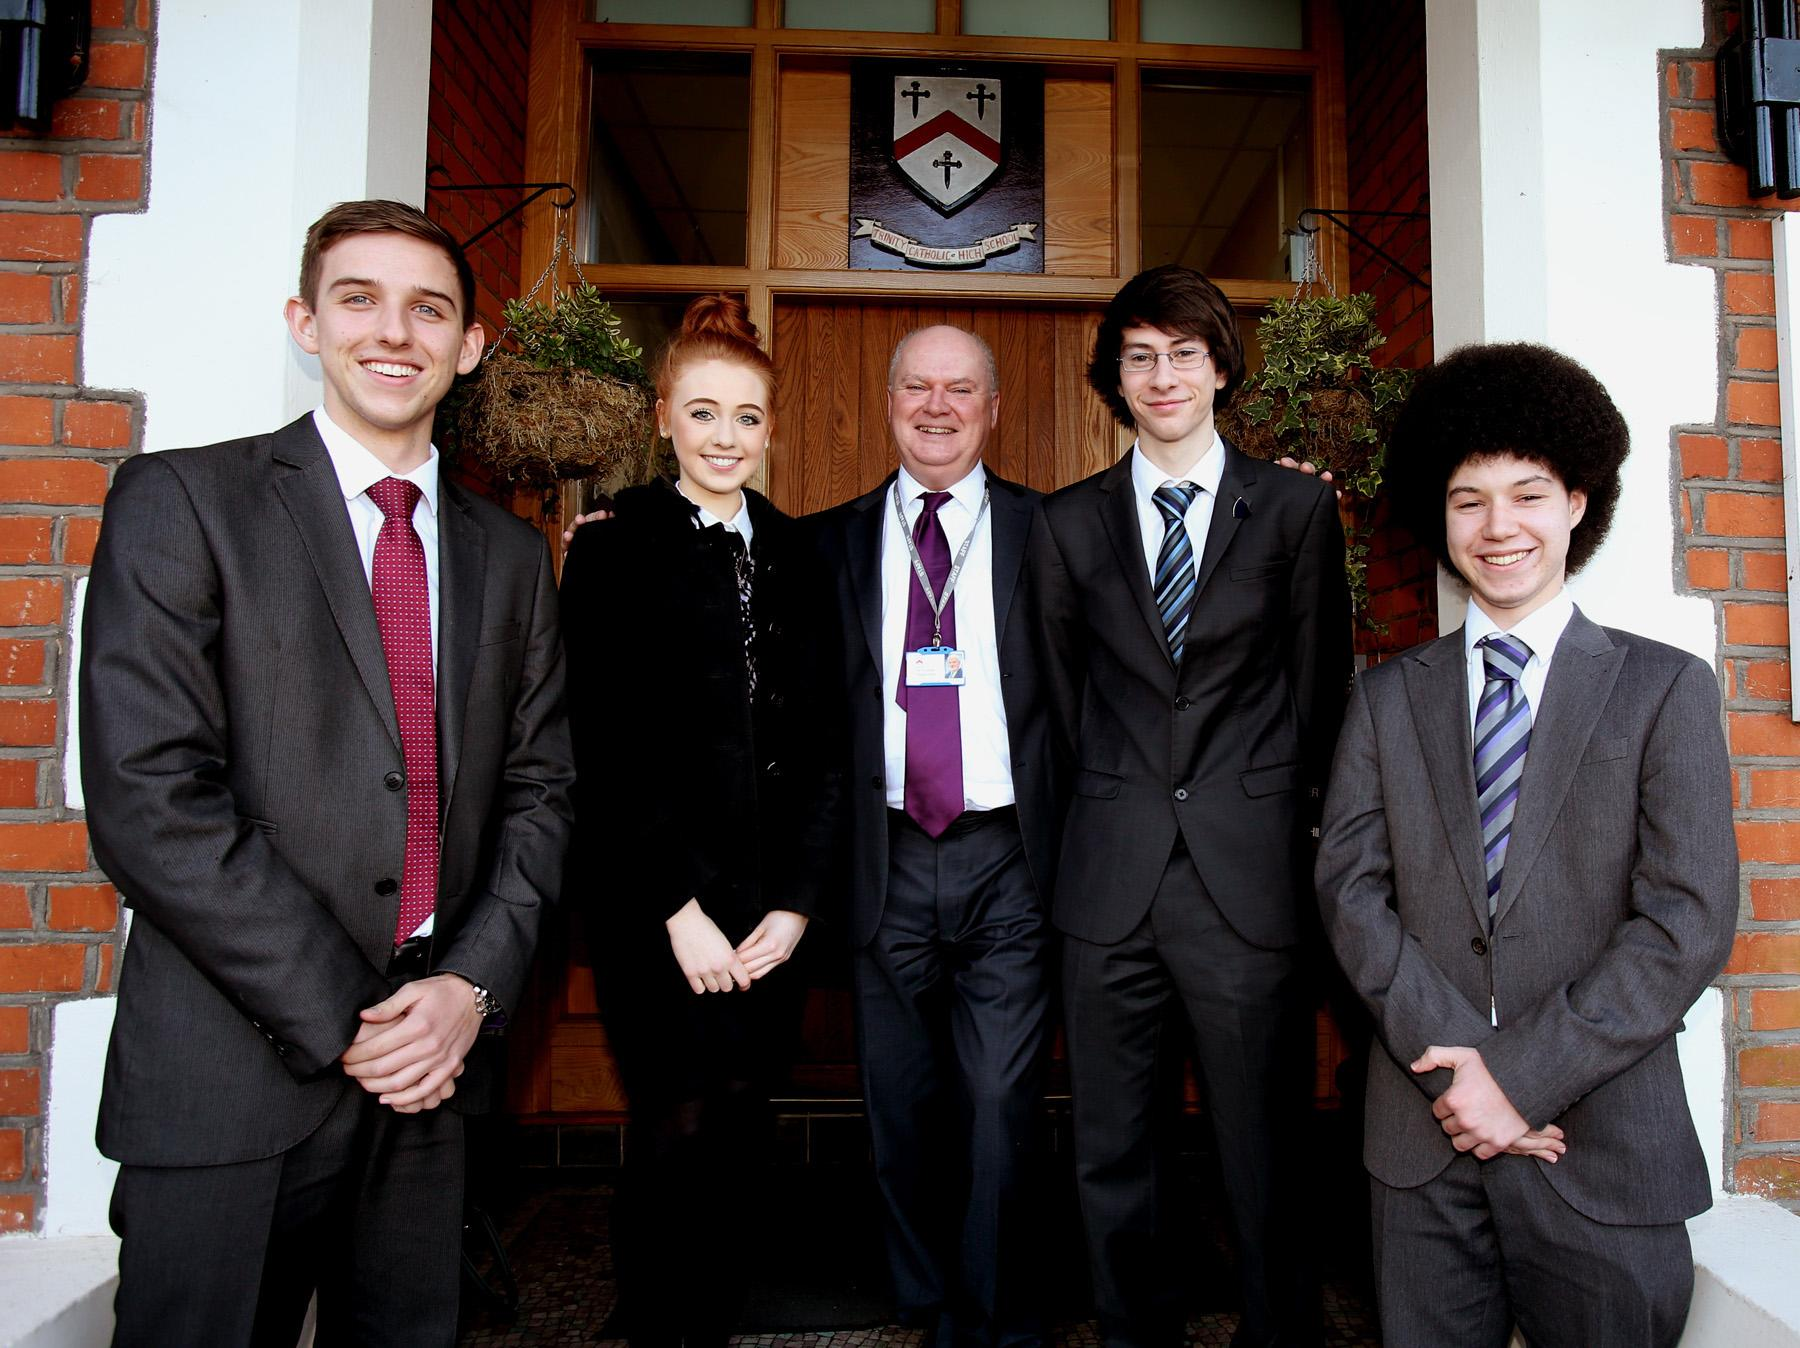 From left to right: Lewis Scott, Emma Hughes, Rob Healey, Luke Marrai and Lee Murray